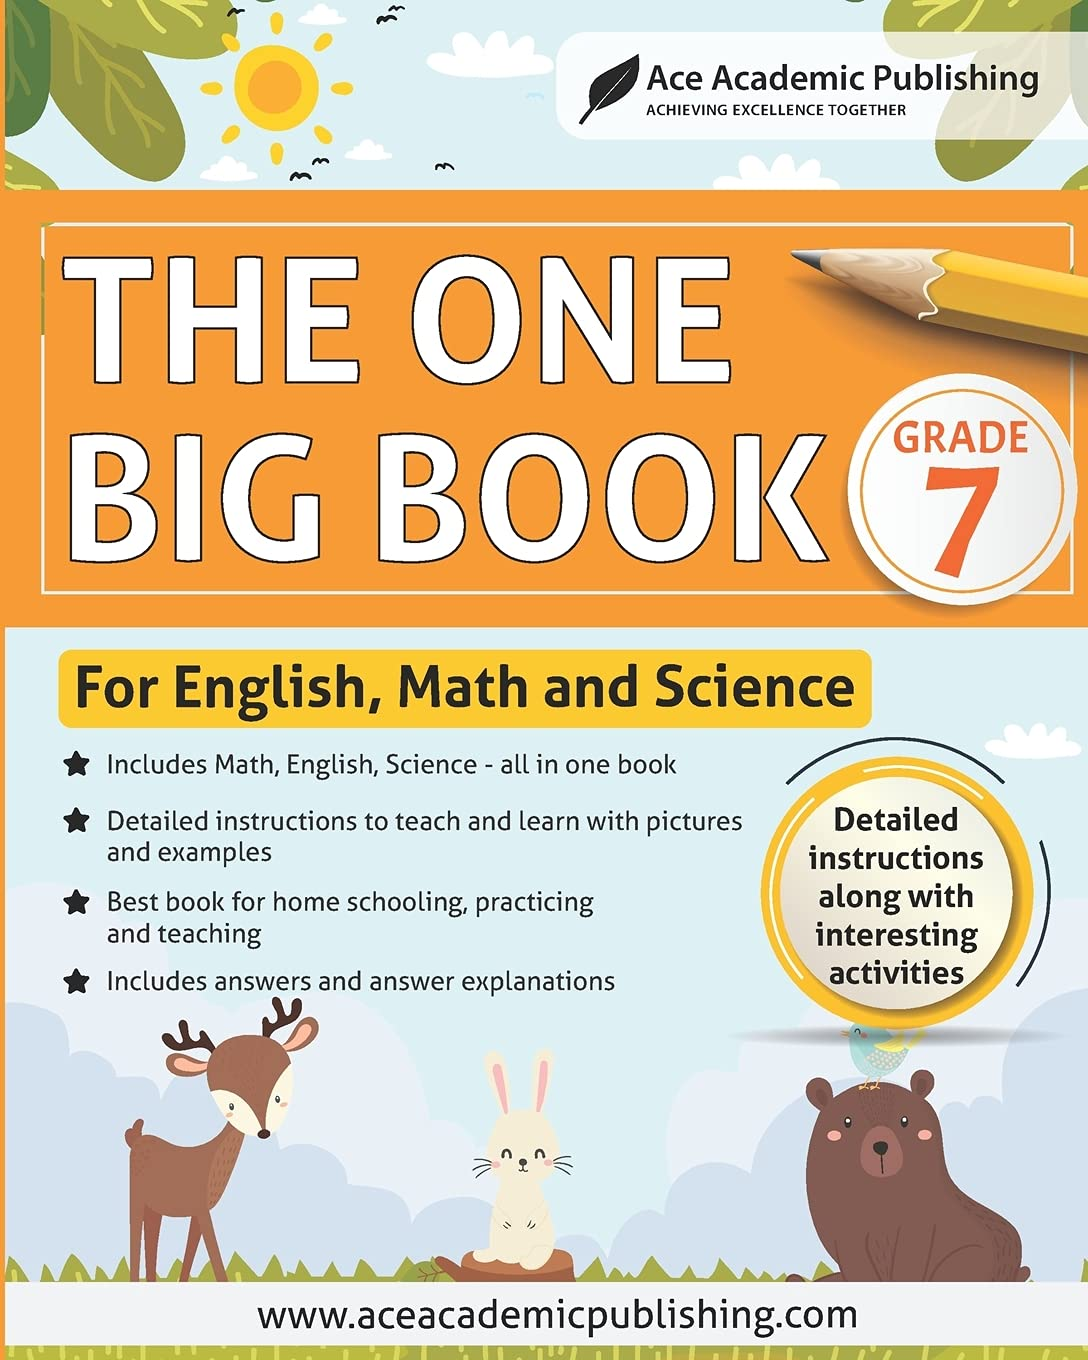 The One Big Book – Grade 7: For English, Math and Science